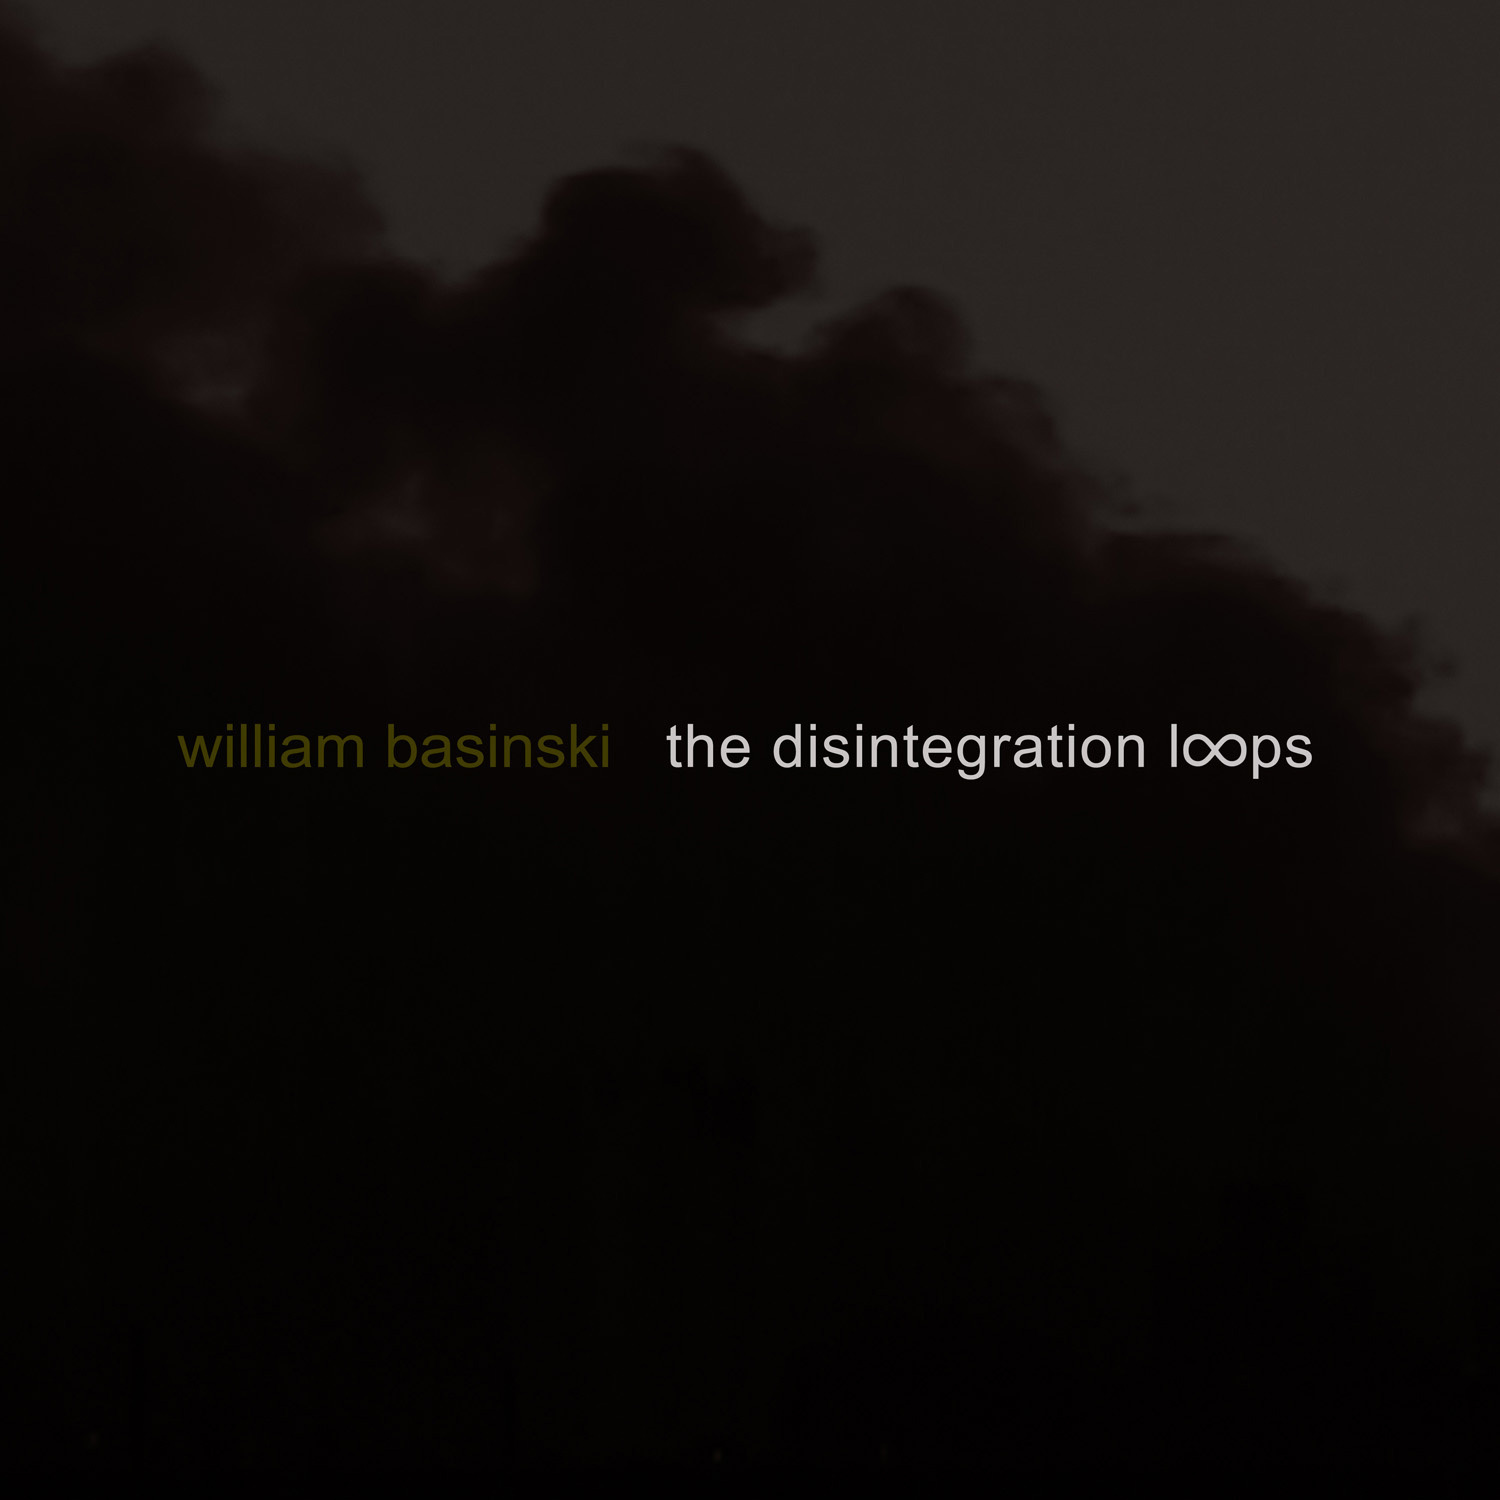 The Disintegration Loops.